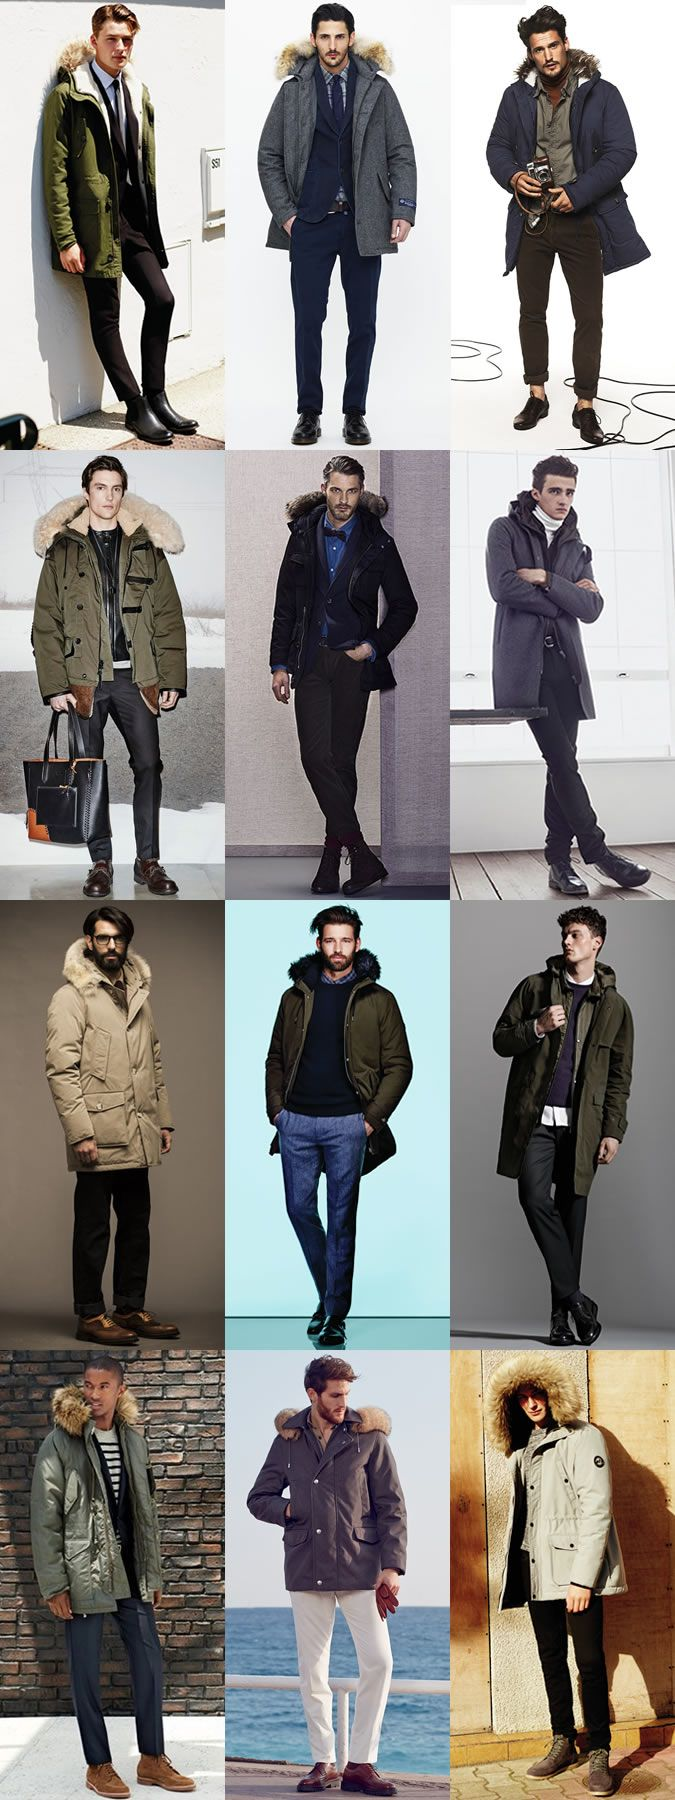 Men's Parka Jackets Outfit Inspiration Lookbook